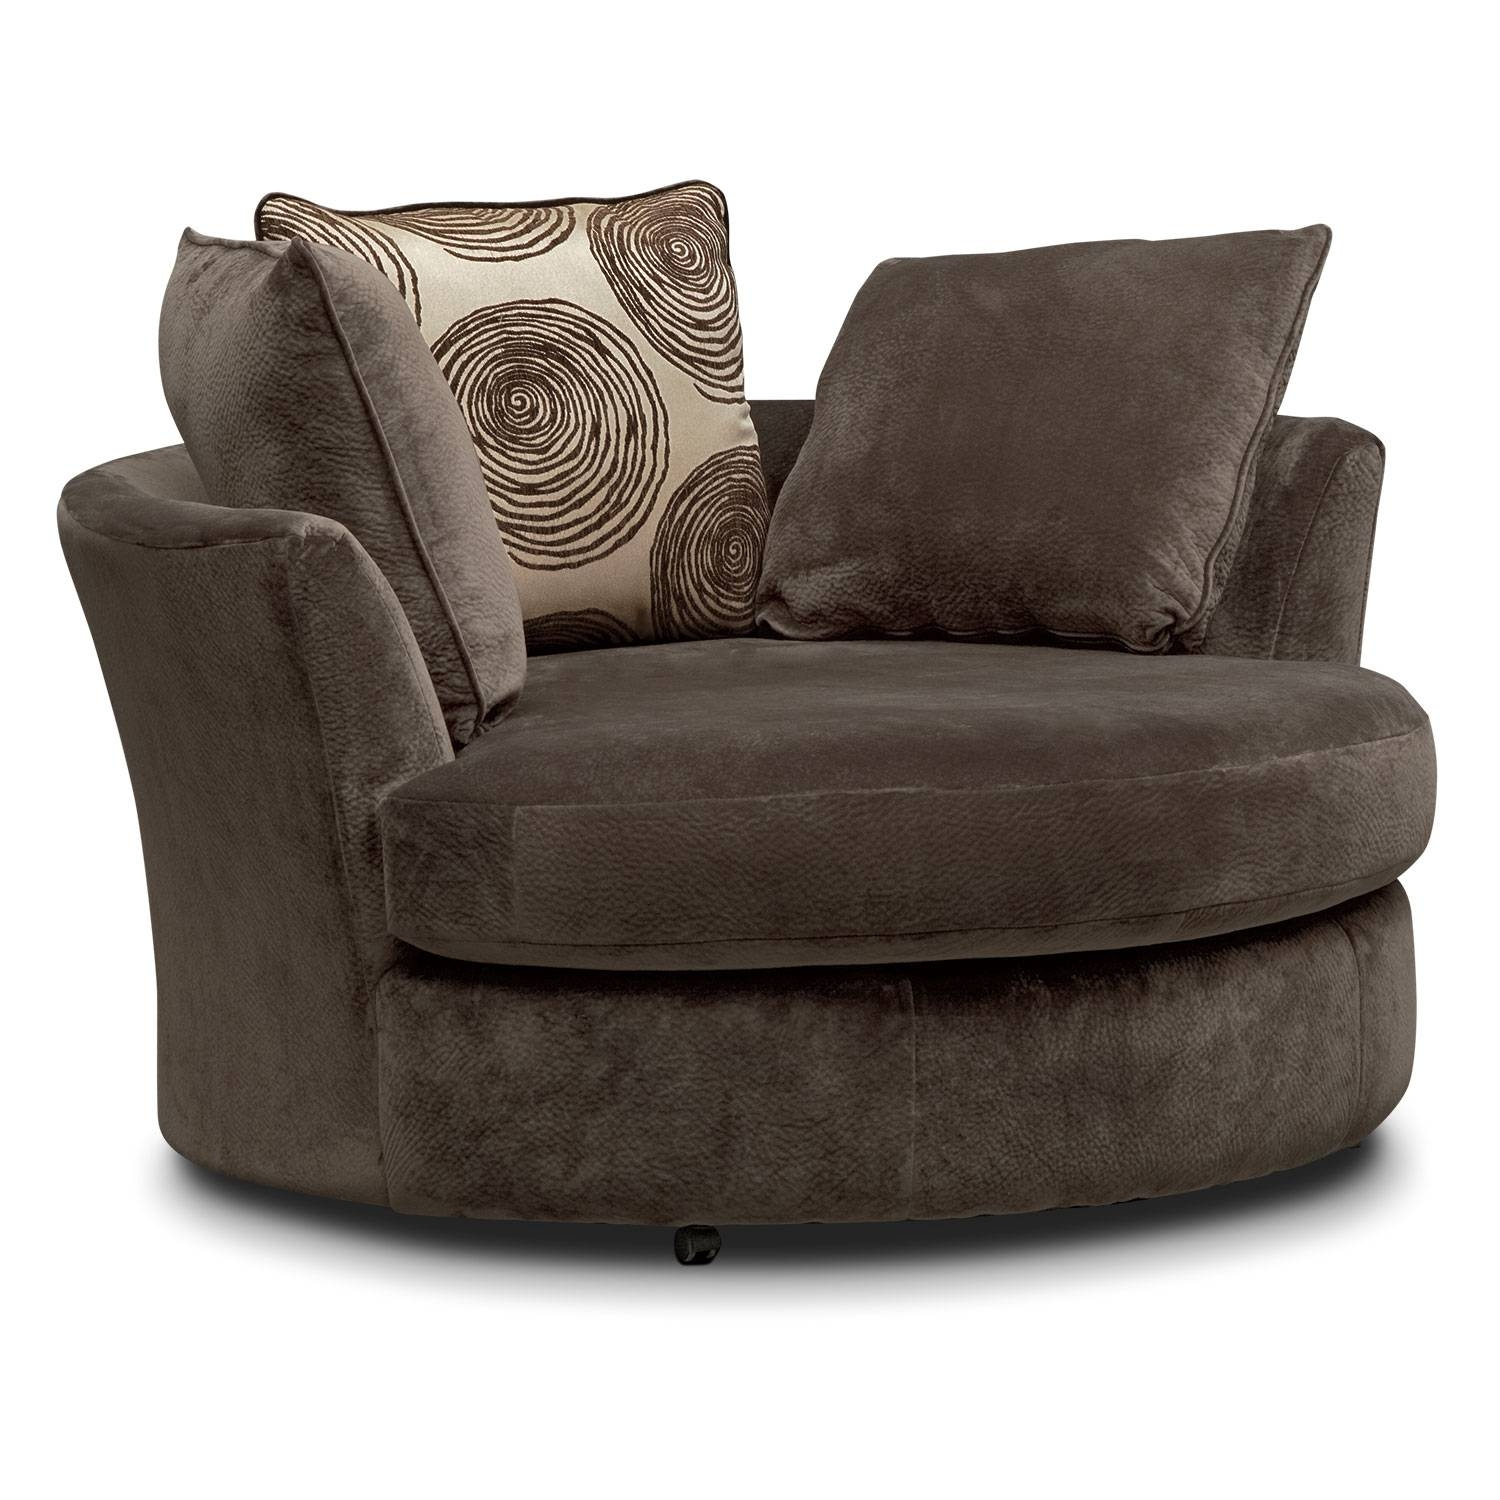 Cordelle Swivel Chair - Chocolate | Value City Furniture intended for Circle Sofa Chairs (Image 10 of 30)